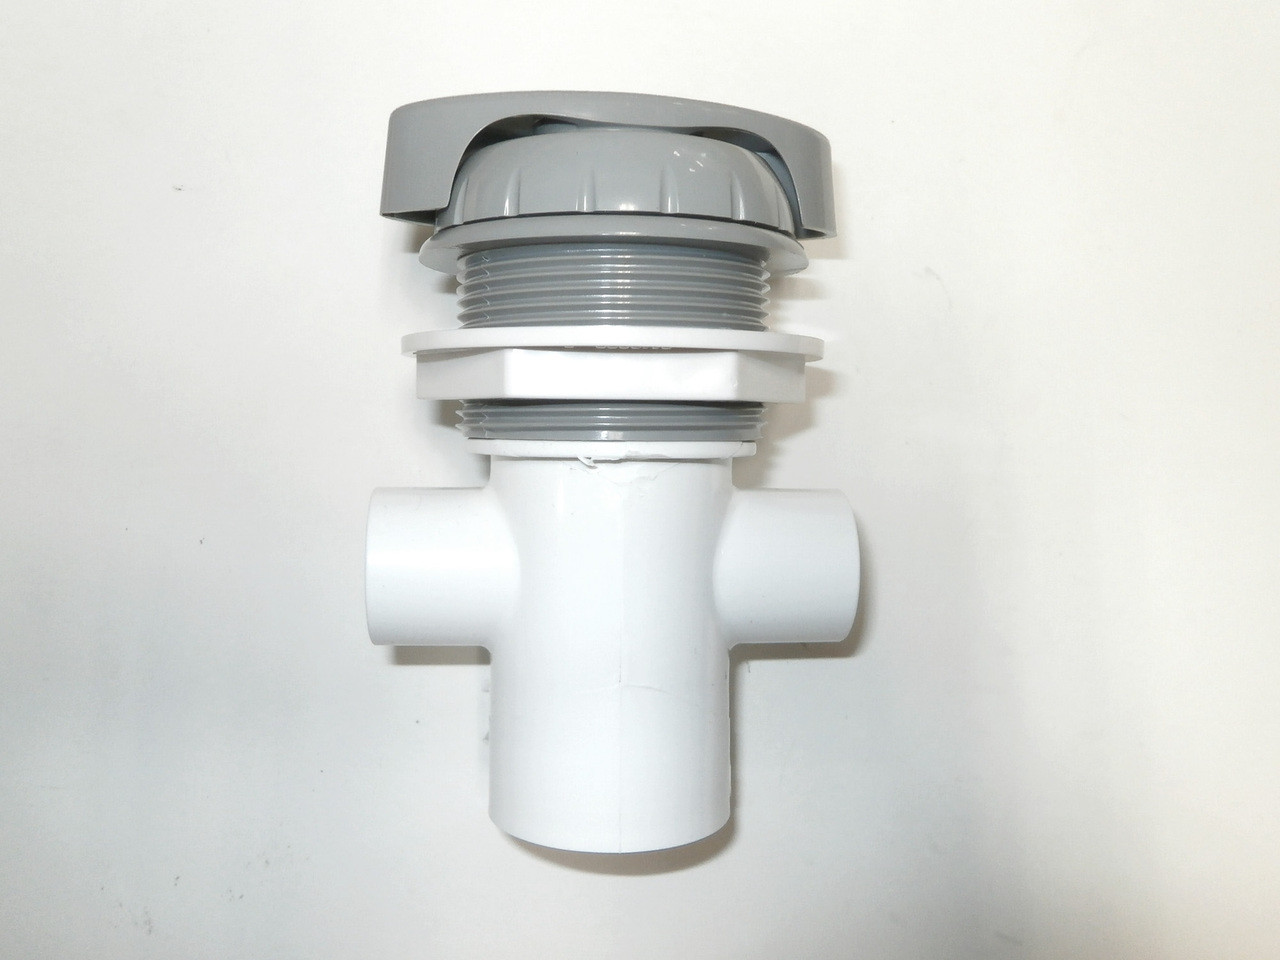 Master Spa - X279630 - .5 inch Gray Waterfall 3 Way Diverter Valve - Side View